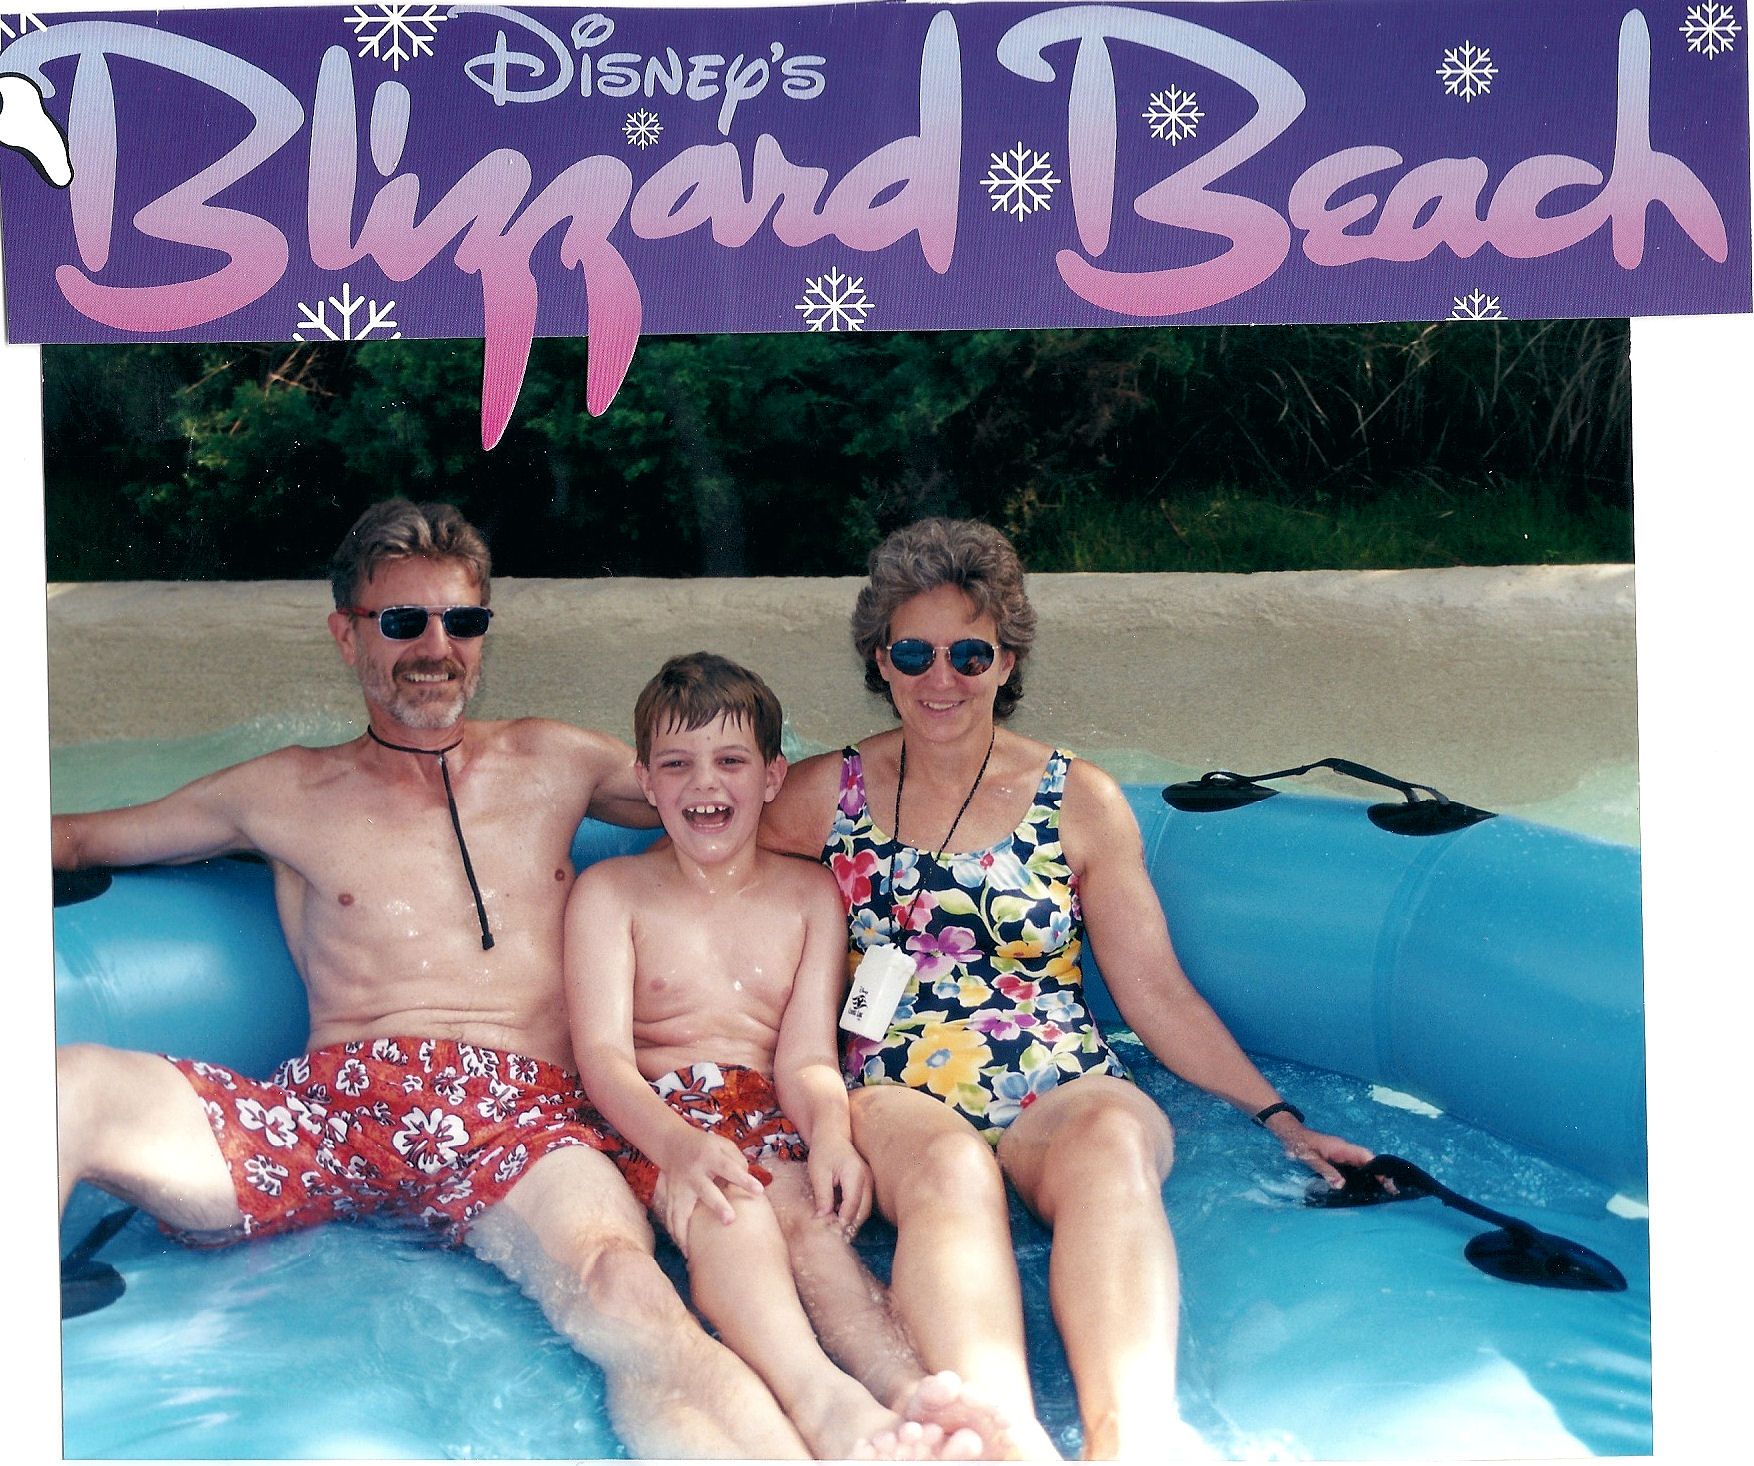 Me and my parents at Blizzard Beach, a water park at the Disney World Resort, just after riding the raft ride.